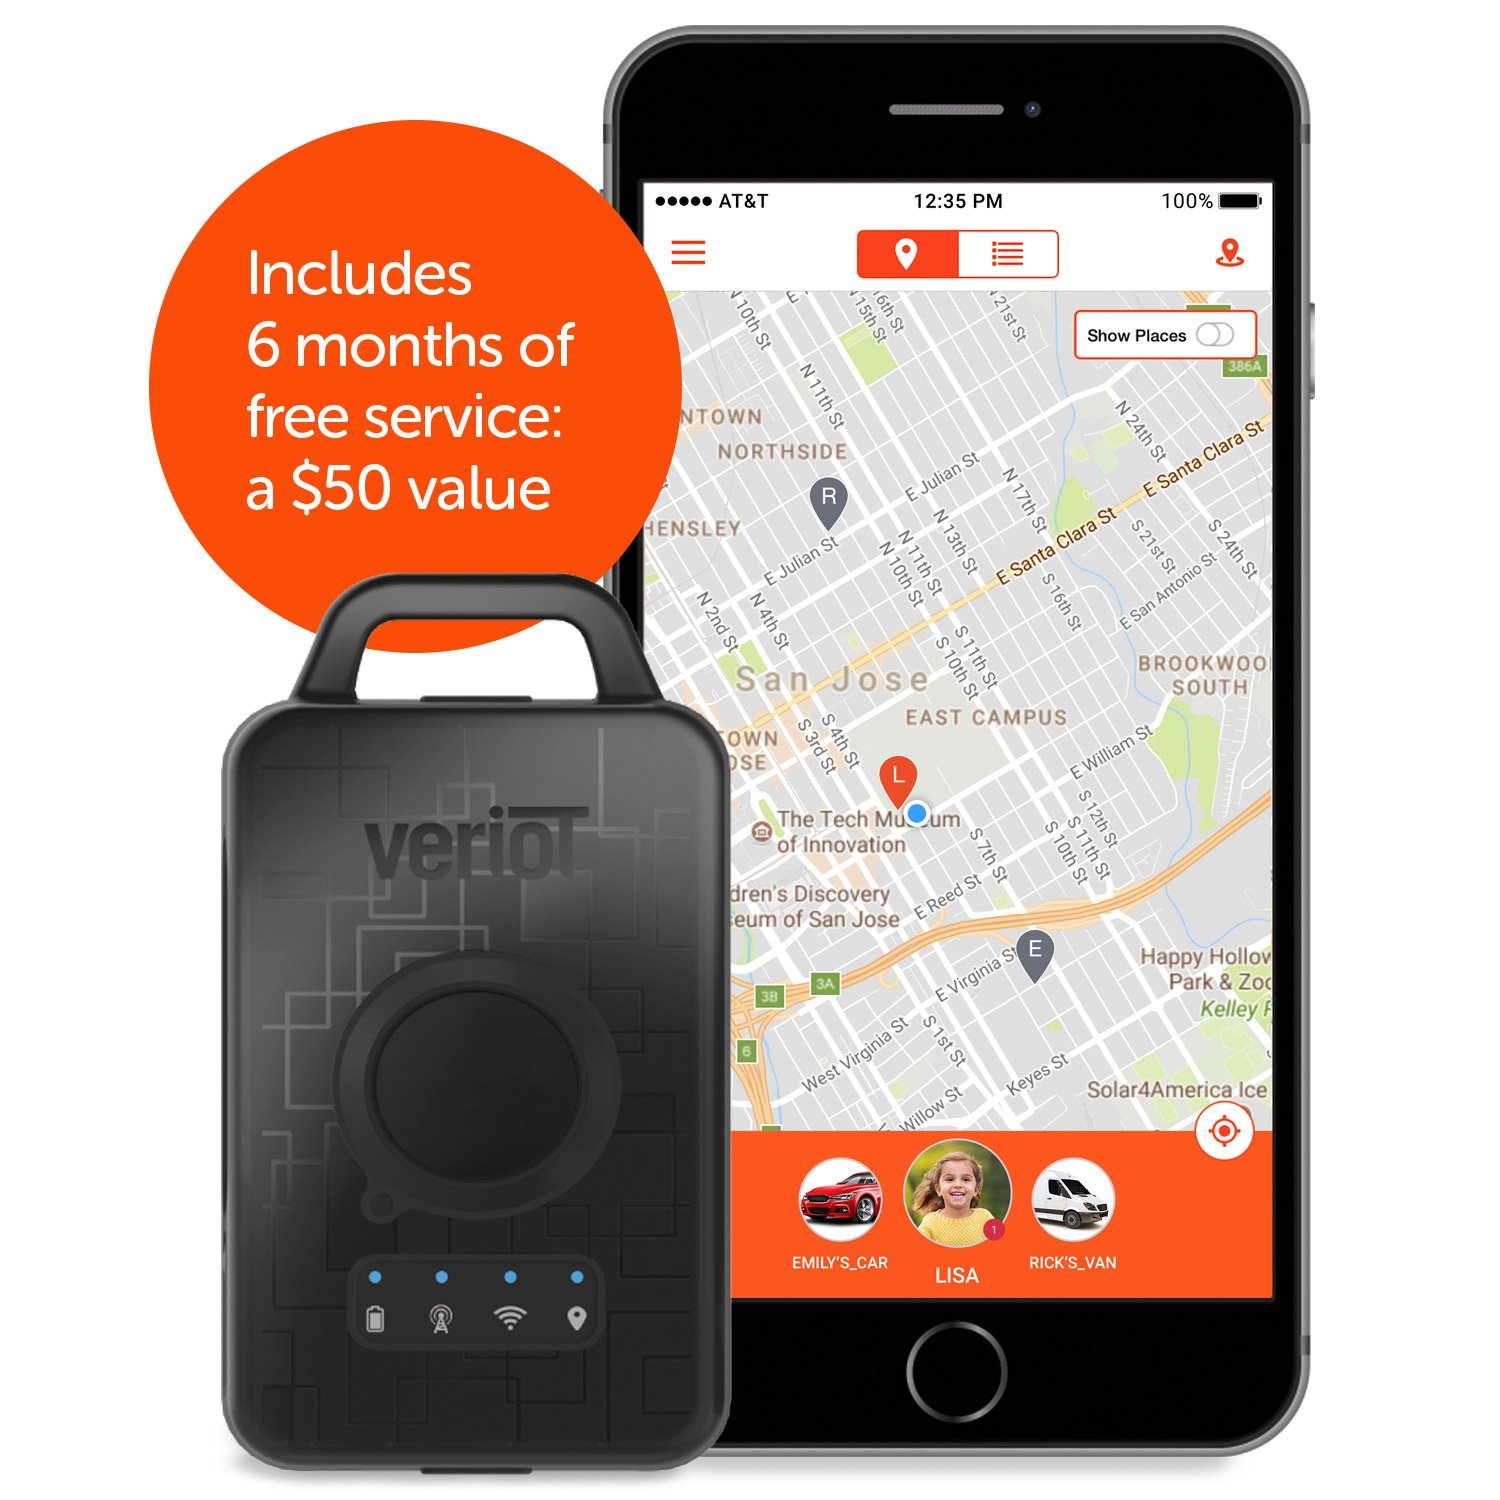 Veriot Venture Smart GPS Tracking Device. Best for Kids, Valuables, Employees and Fleets. AT&T 3G Coverage! Real Time locations, 6 MO FREE SERVICE LOWEST TOTAL COST OF OWNERSHIP. (1 Pack)